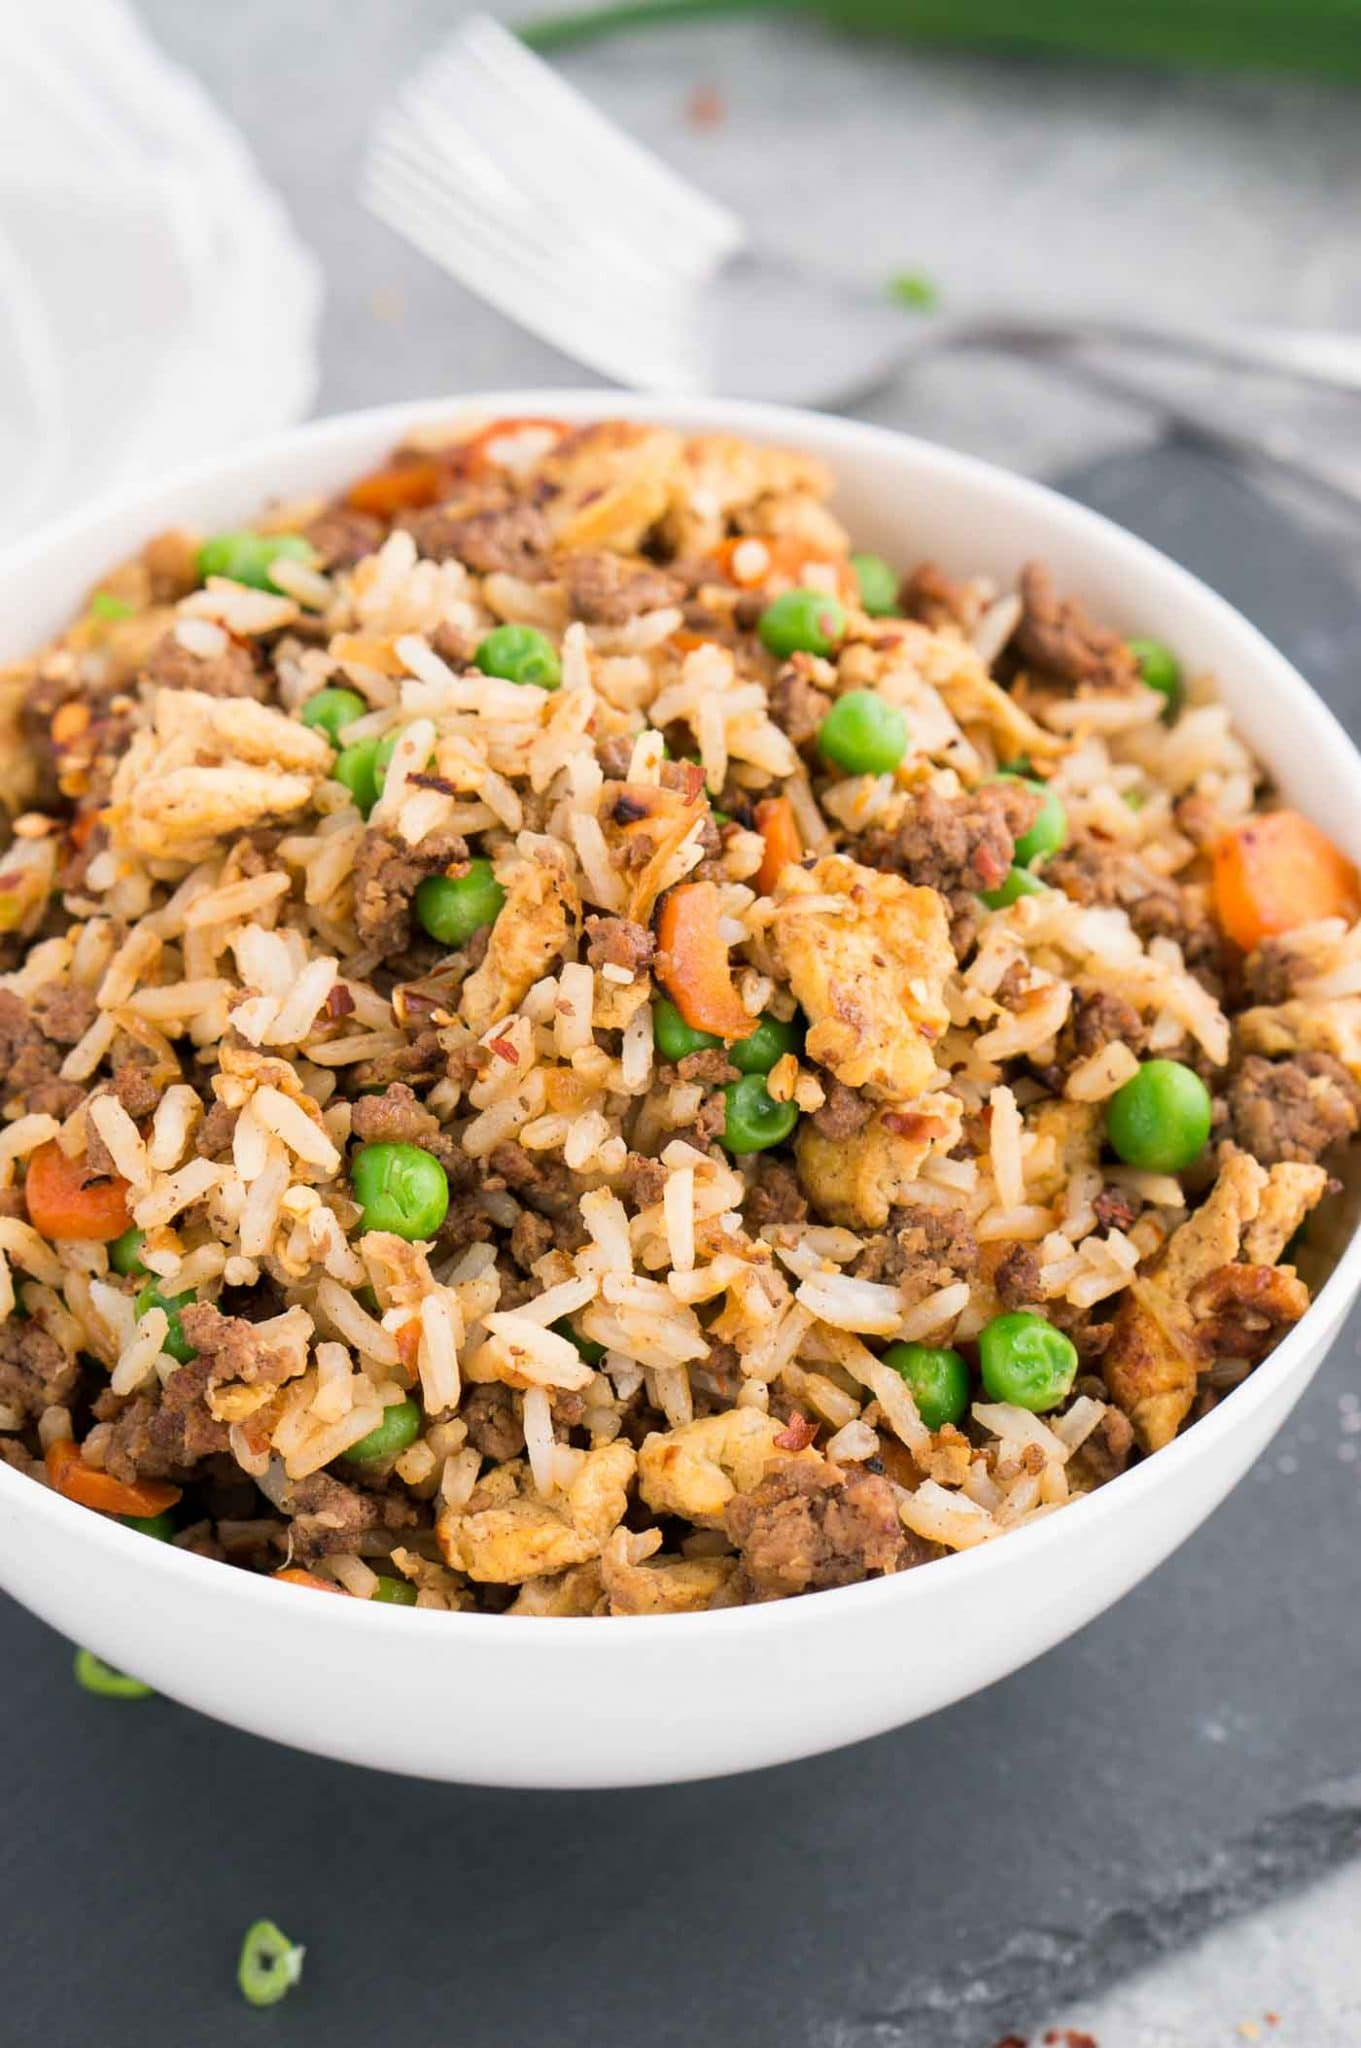 ground beef fried rice recipe served in a bowl